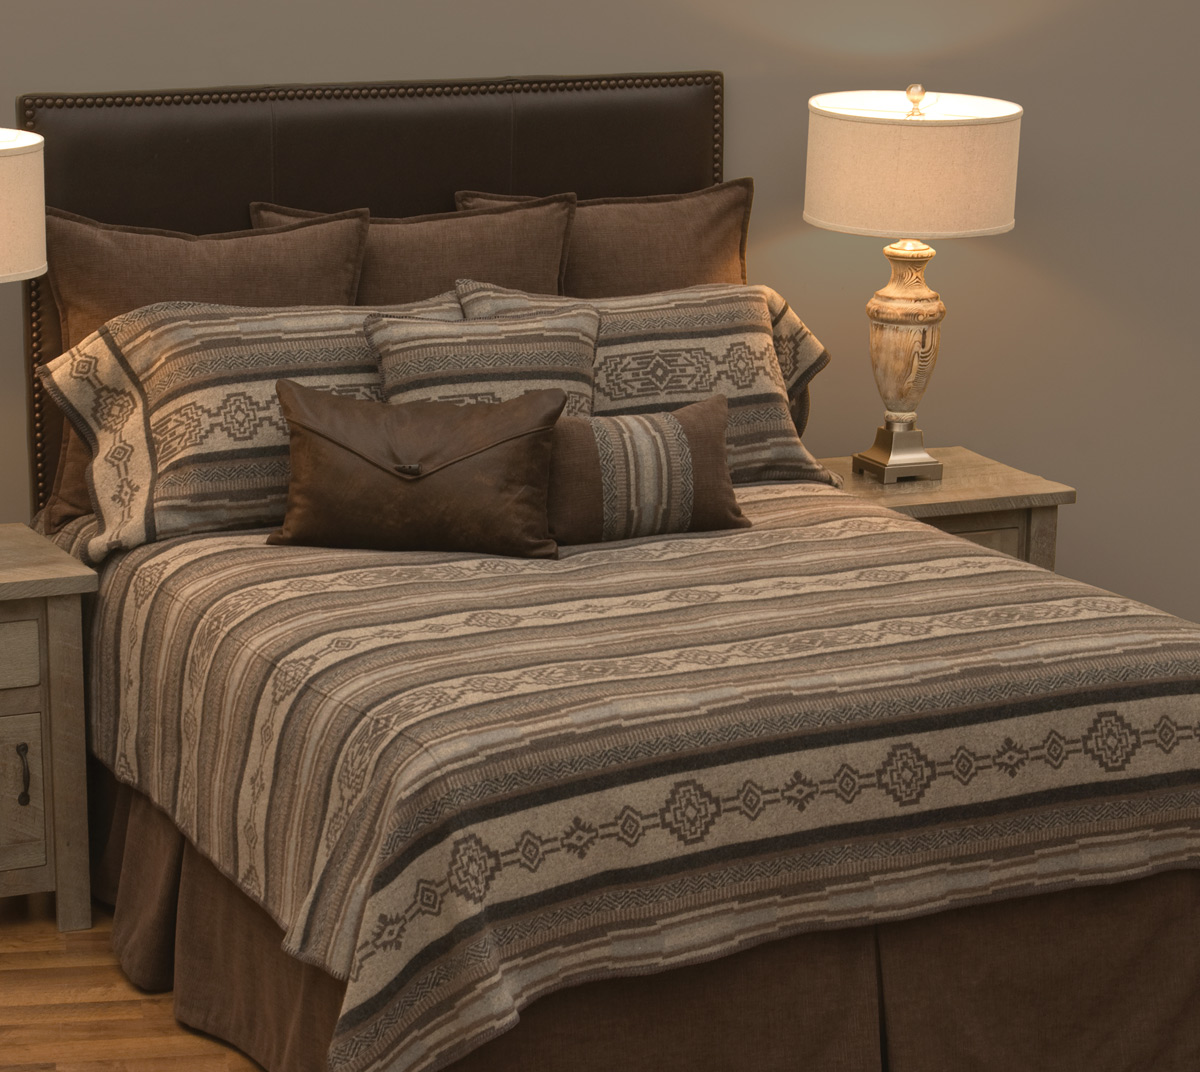 Lodge Lux Basic Bed Set - Super King